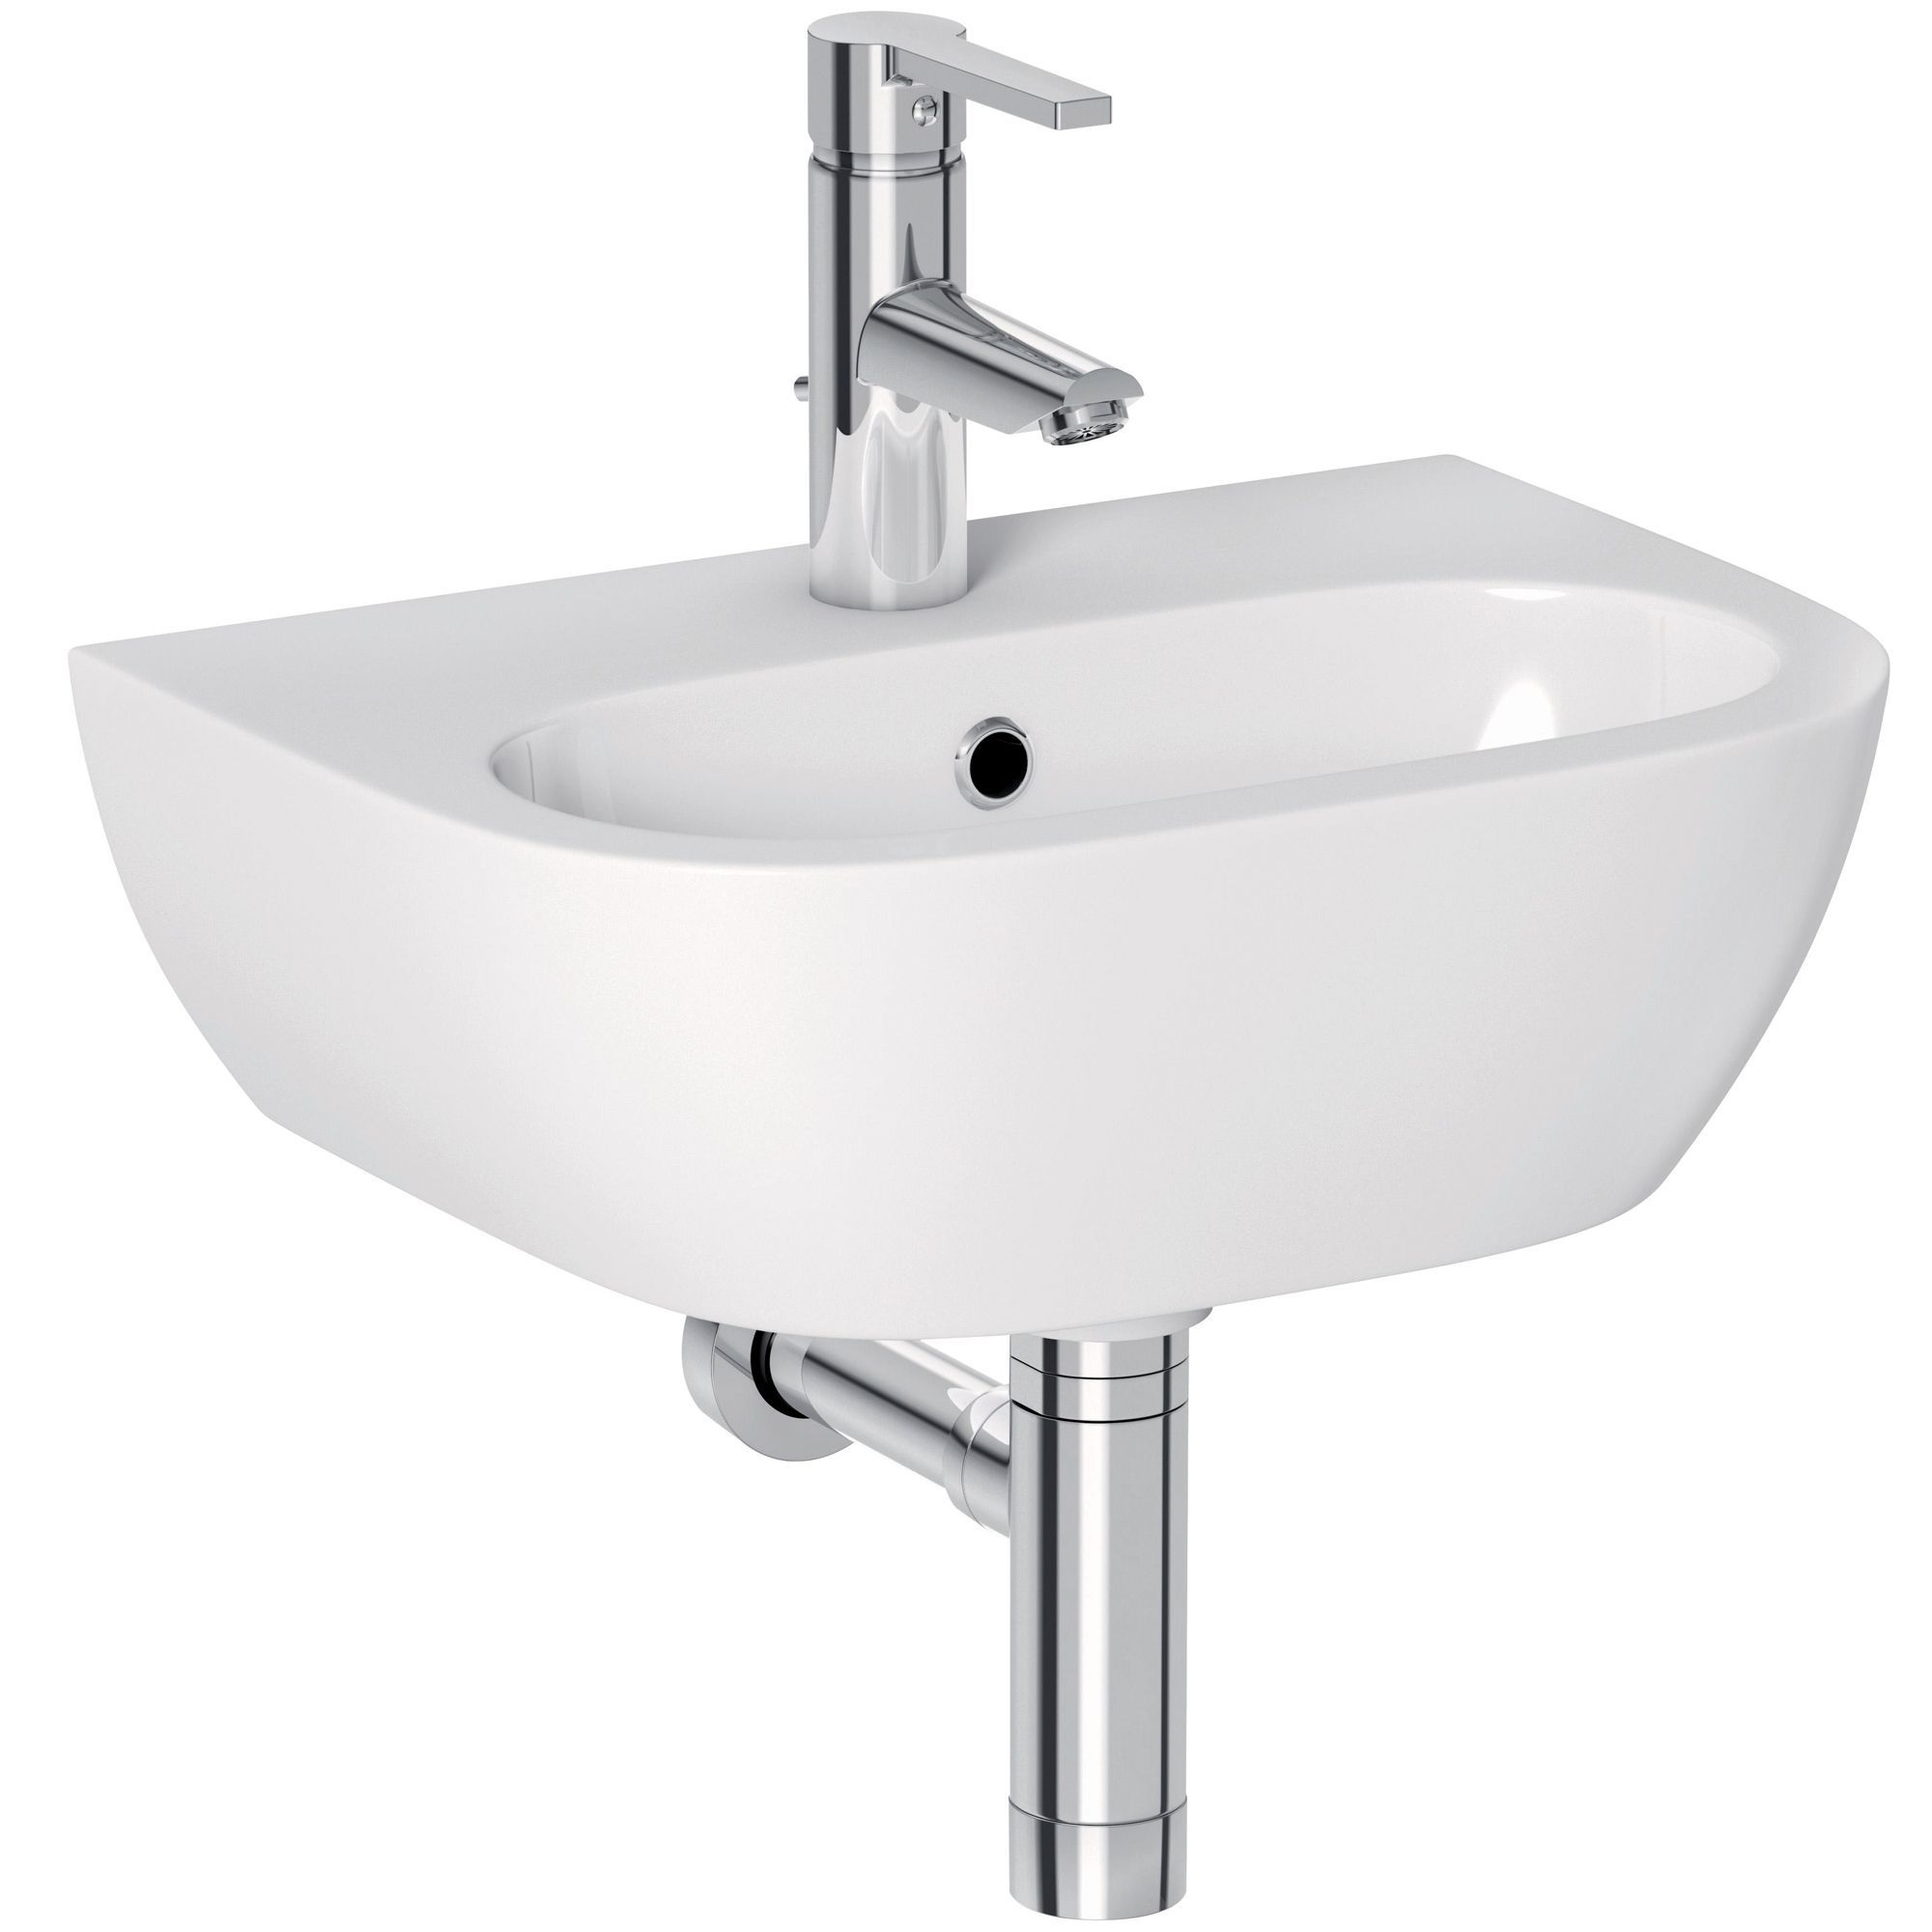 Cooke lewis helena wall mounted cloakroom basin B q bathroom design service